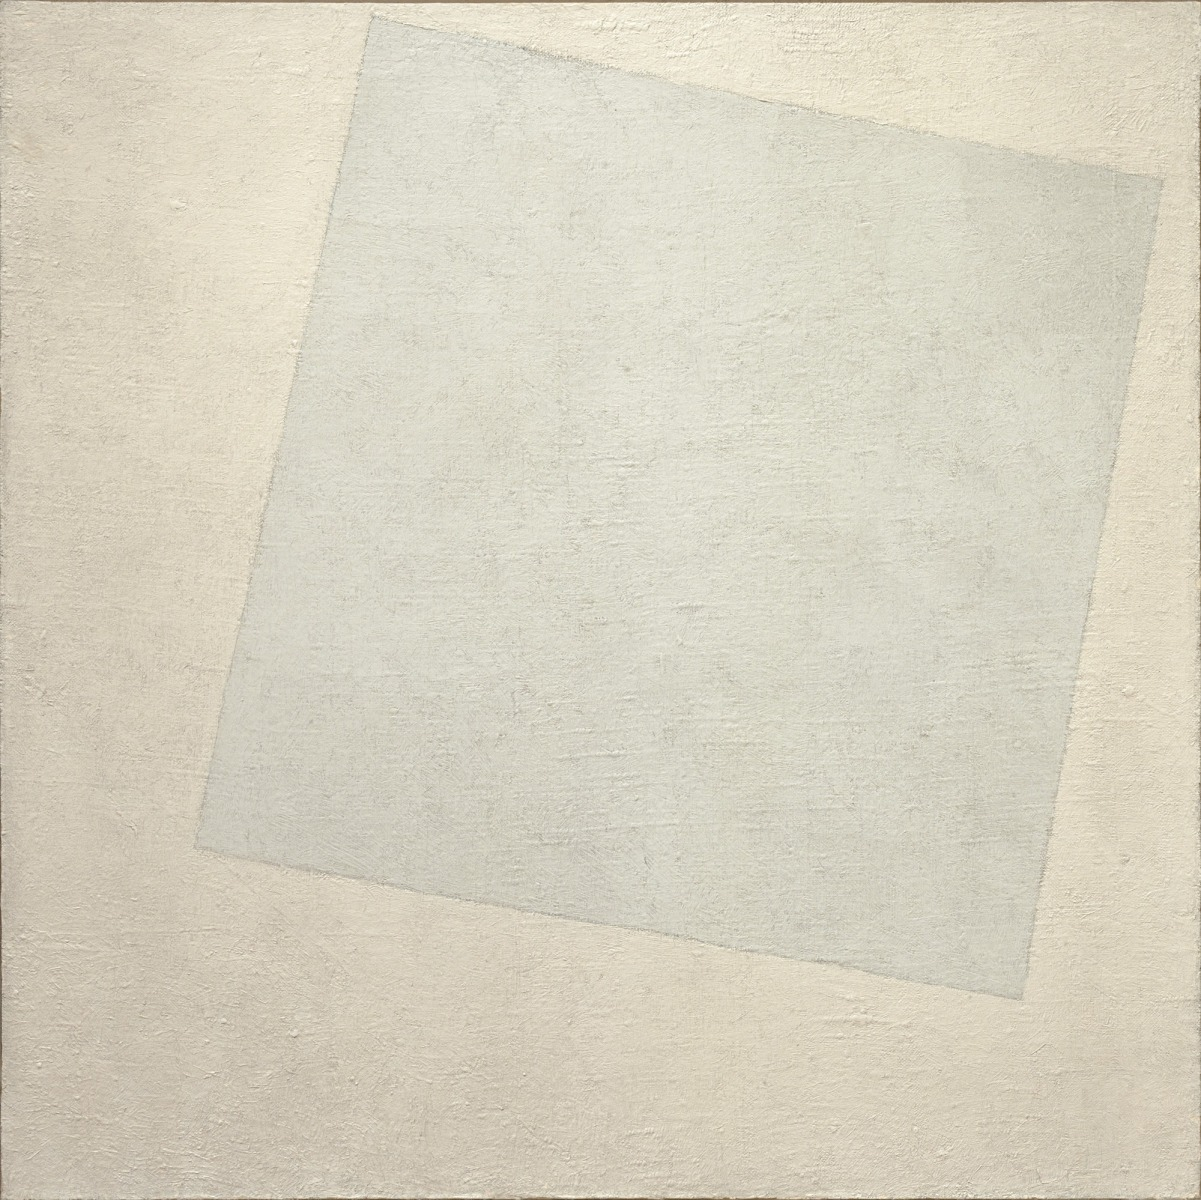 Kasimir Malevich, Suprematist Composition: White on White, 1918